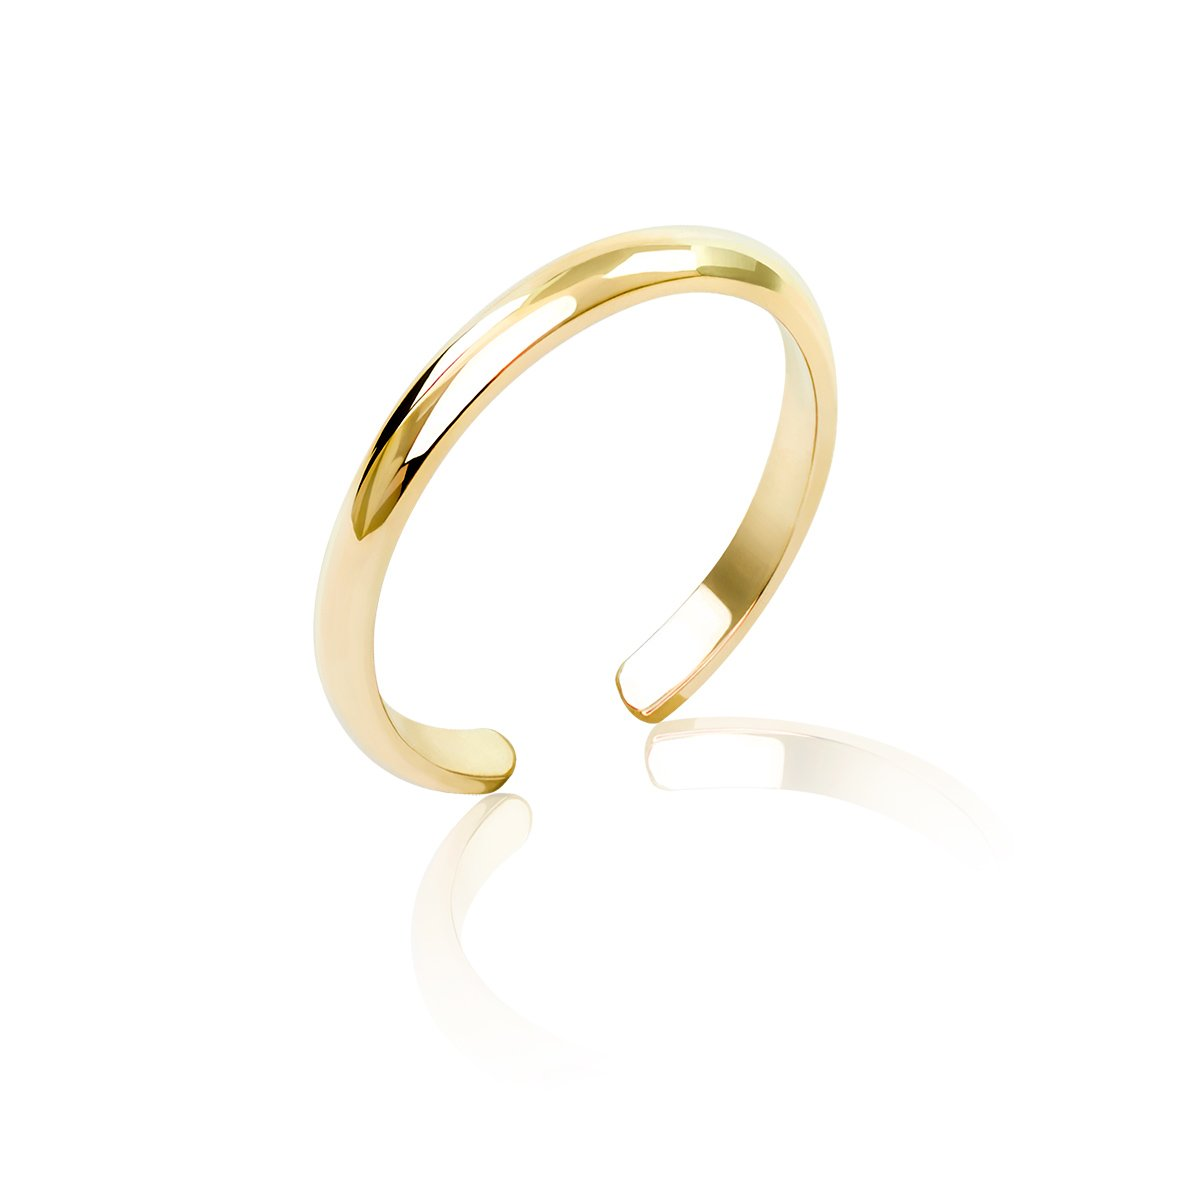 Honolulu Jewelry Company 14K Yellow Gold Band Toe Ring (2mm) by Honolulu Jewelry Company